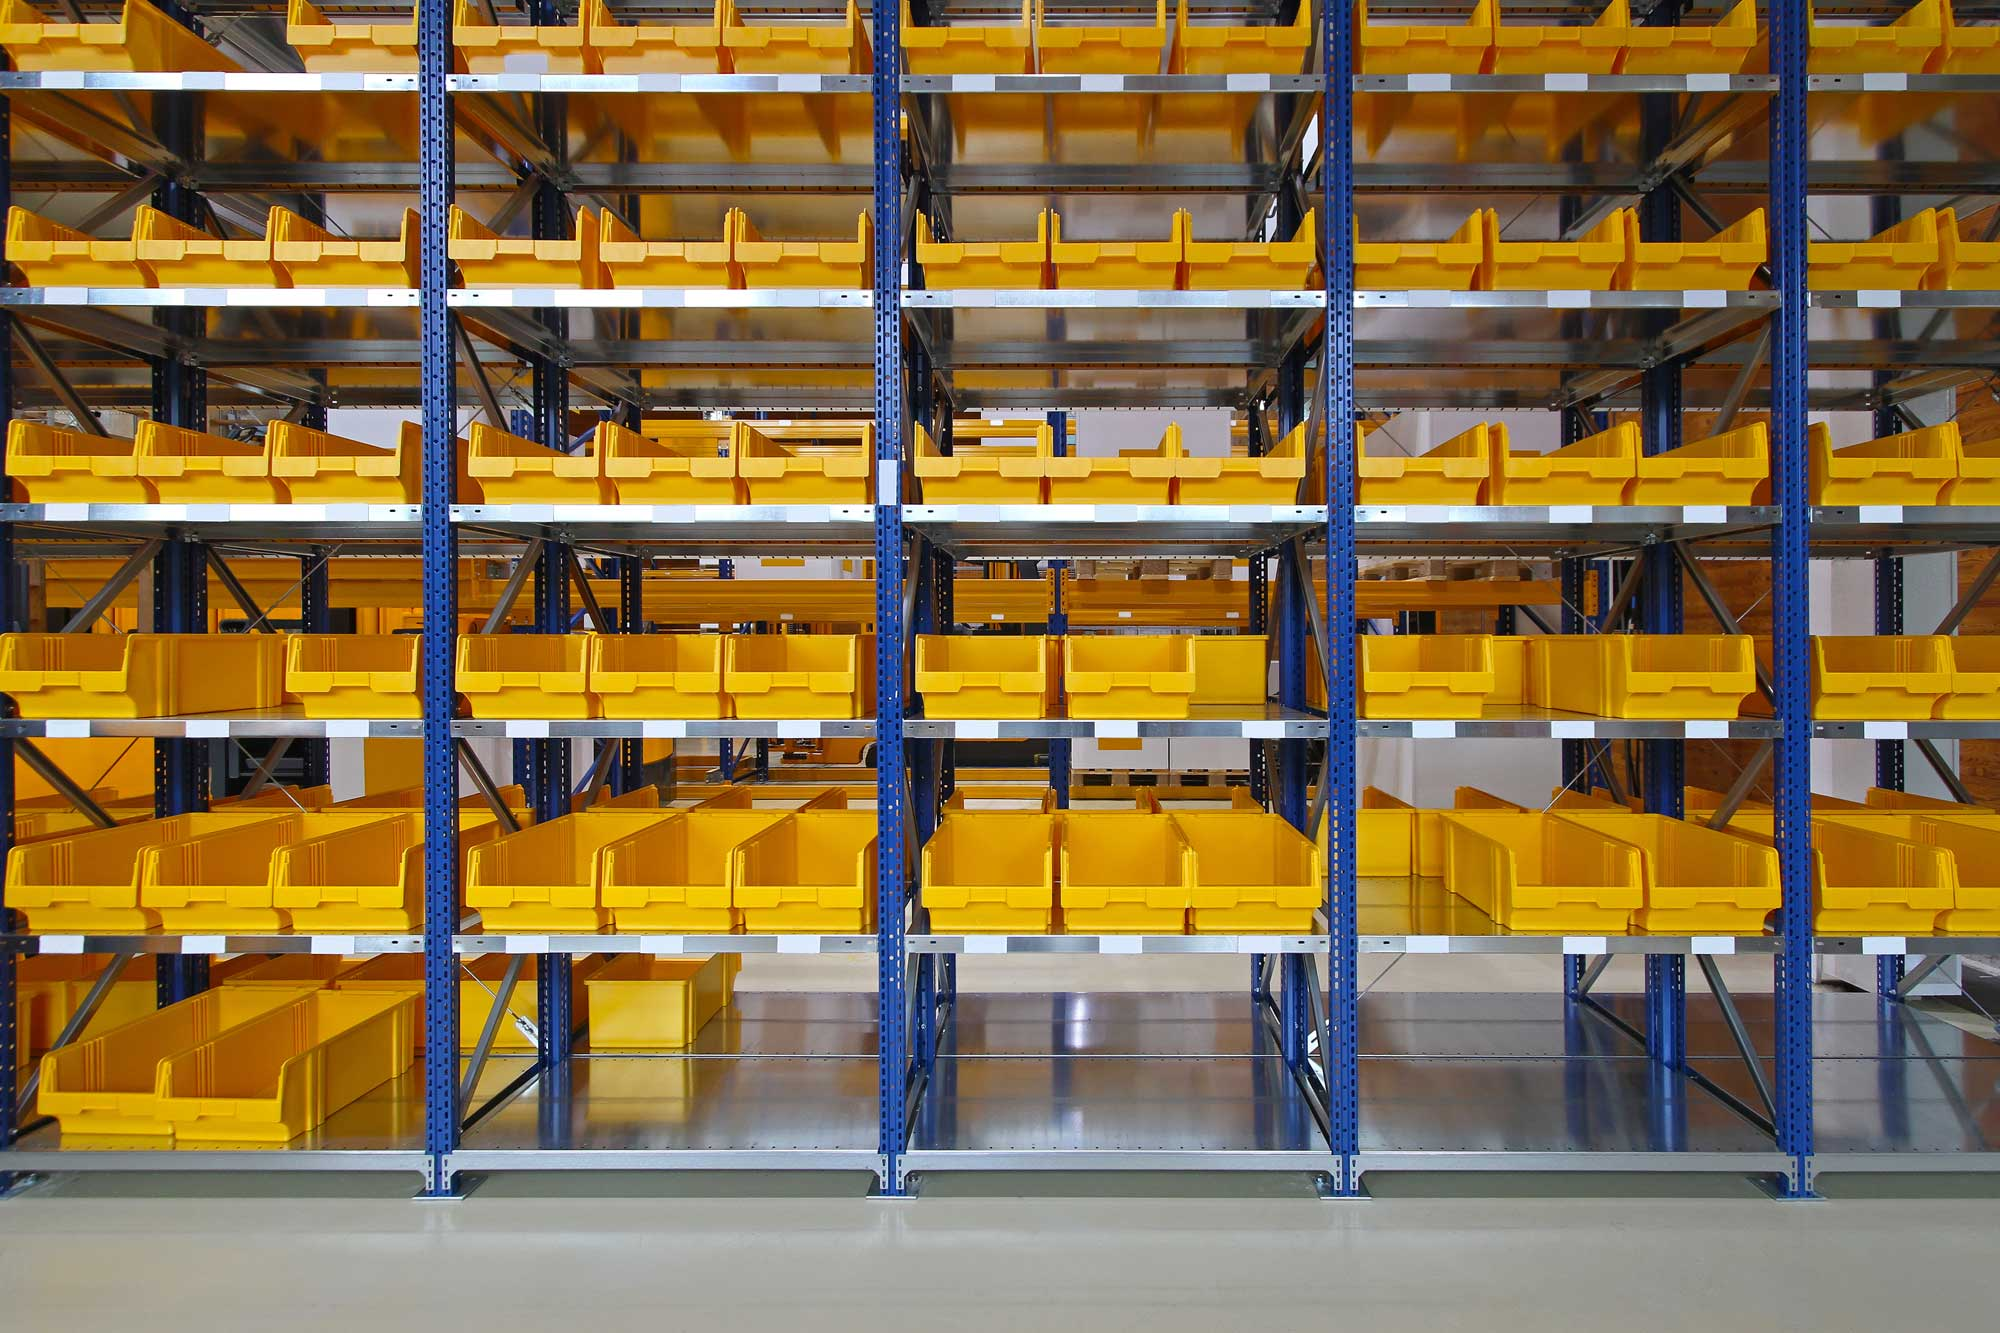 Empty Warehouse Storage Bins